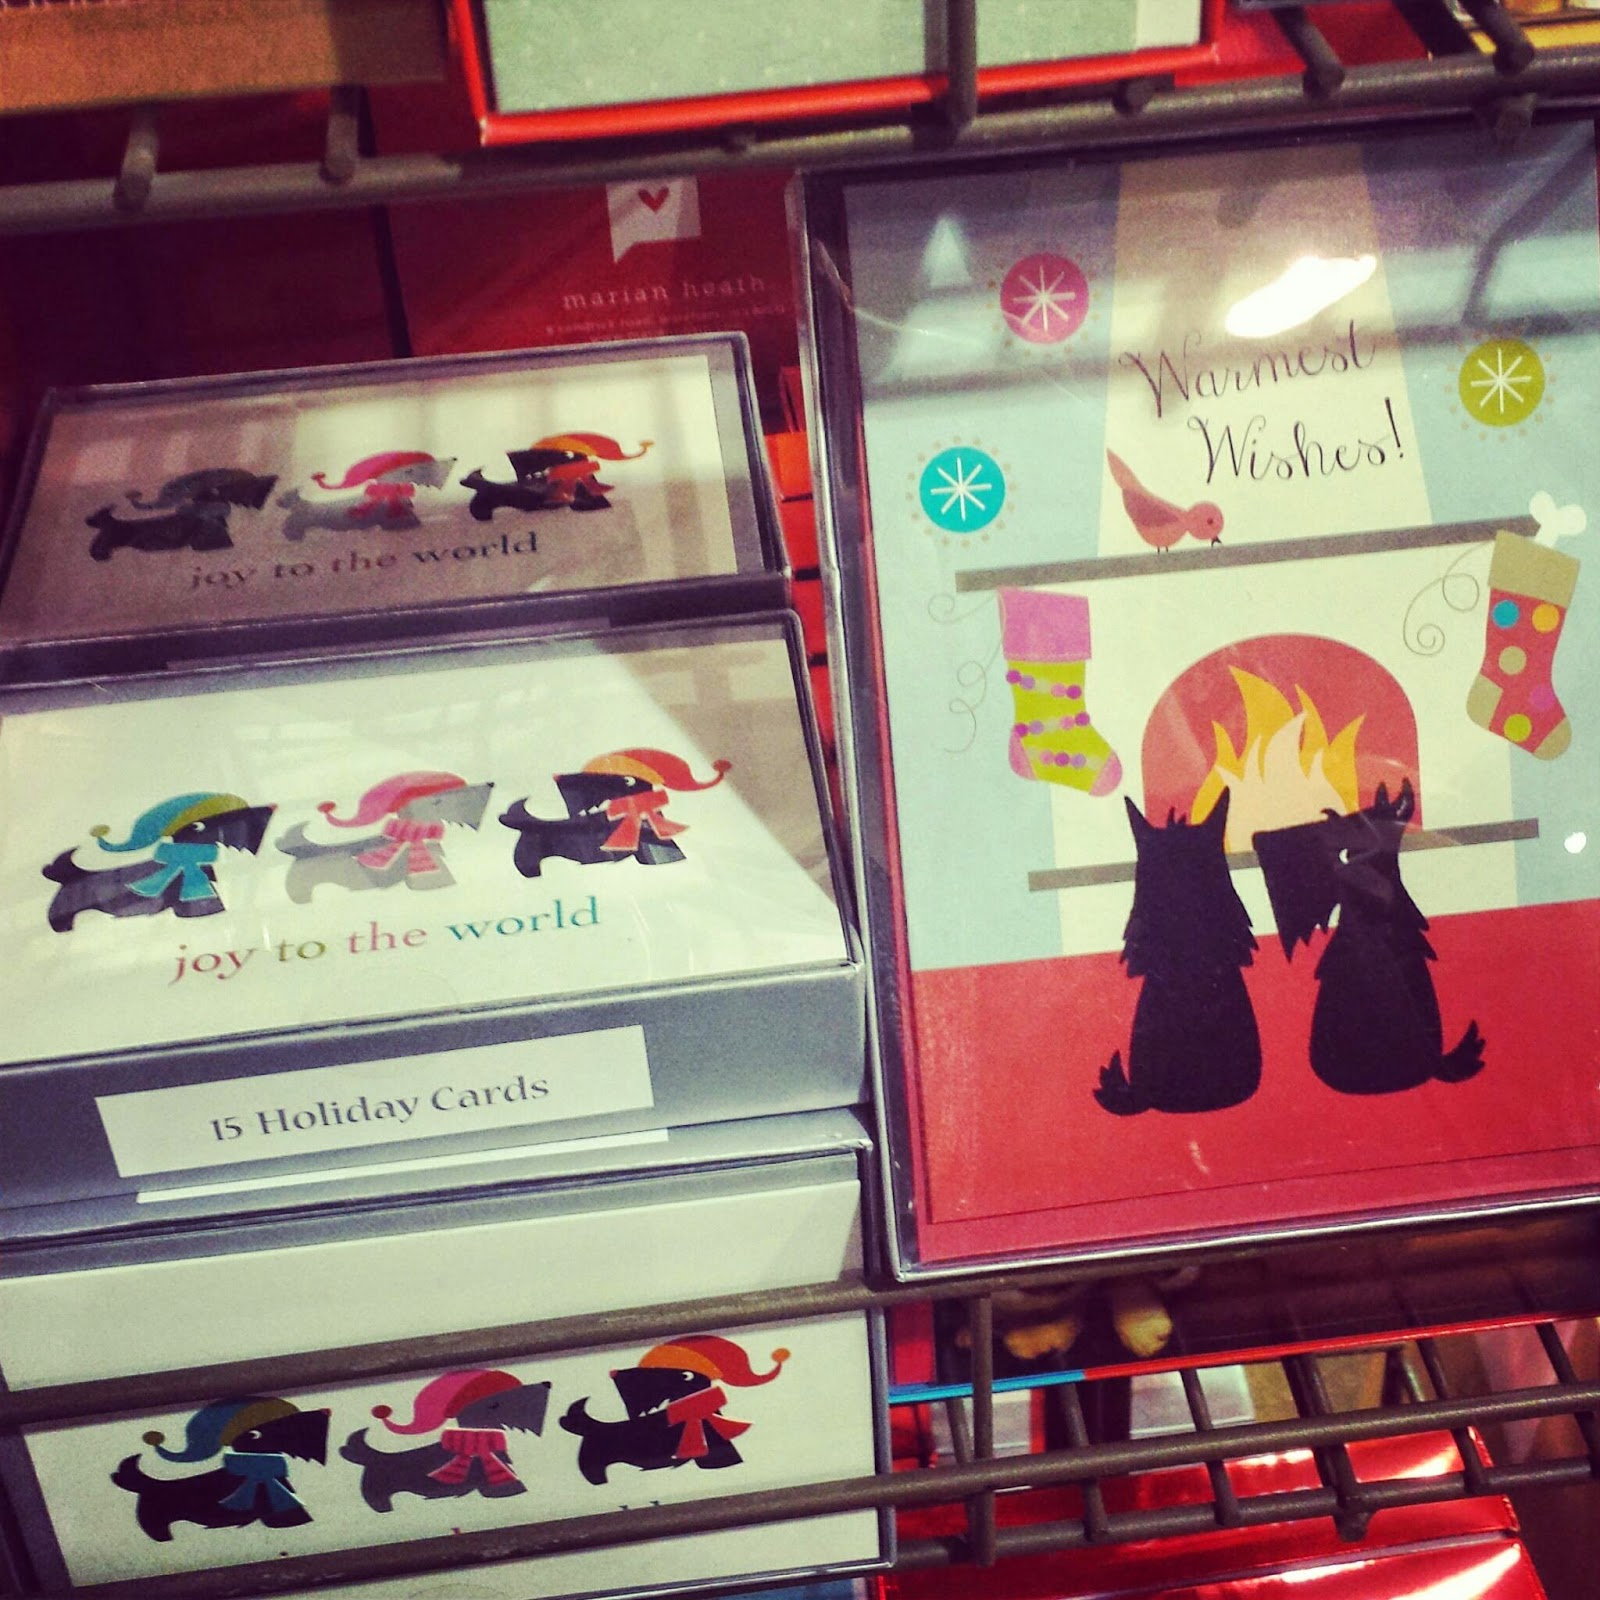 Scottie mom this weeks scottie finds set of 15 holiday scottie dog greeting cards 1299 at world market m4hsunfo